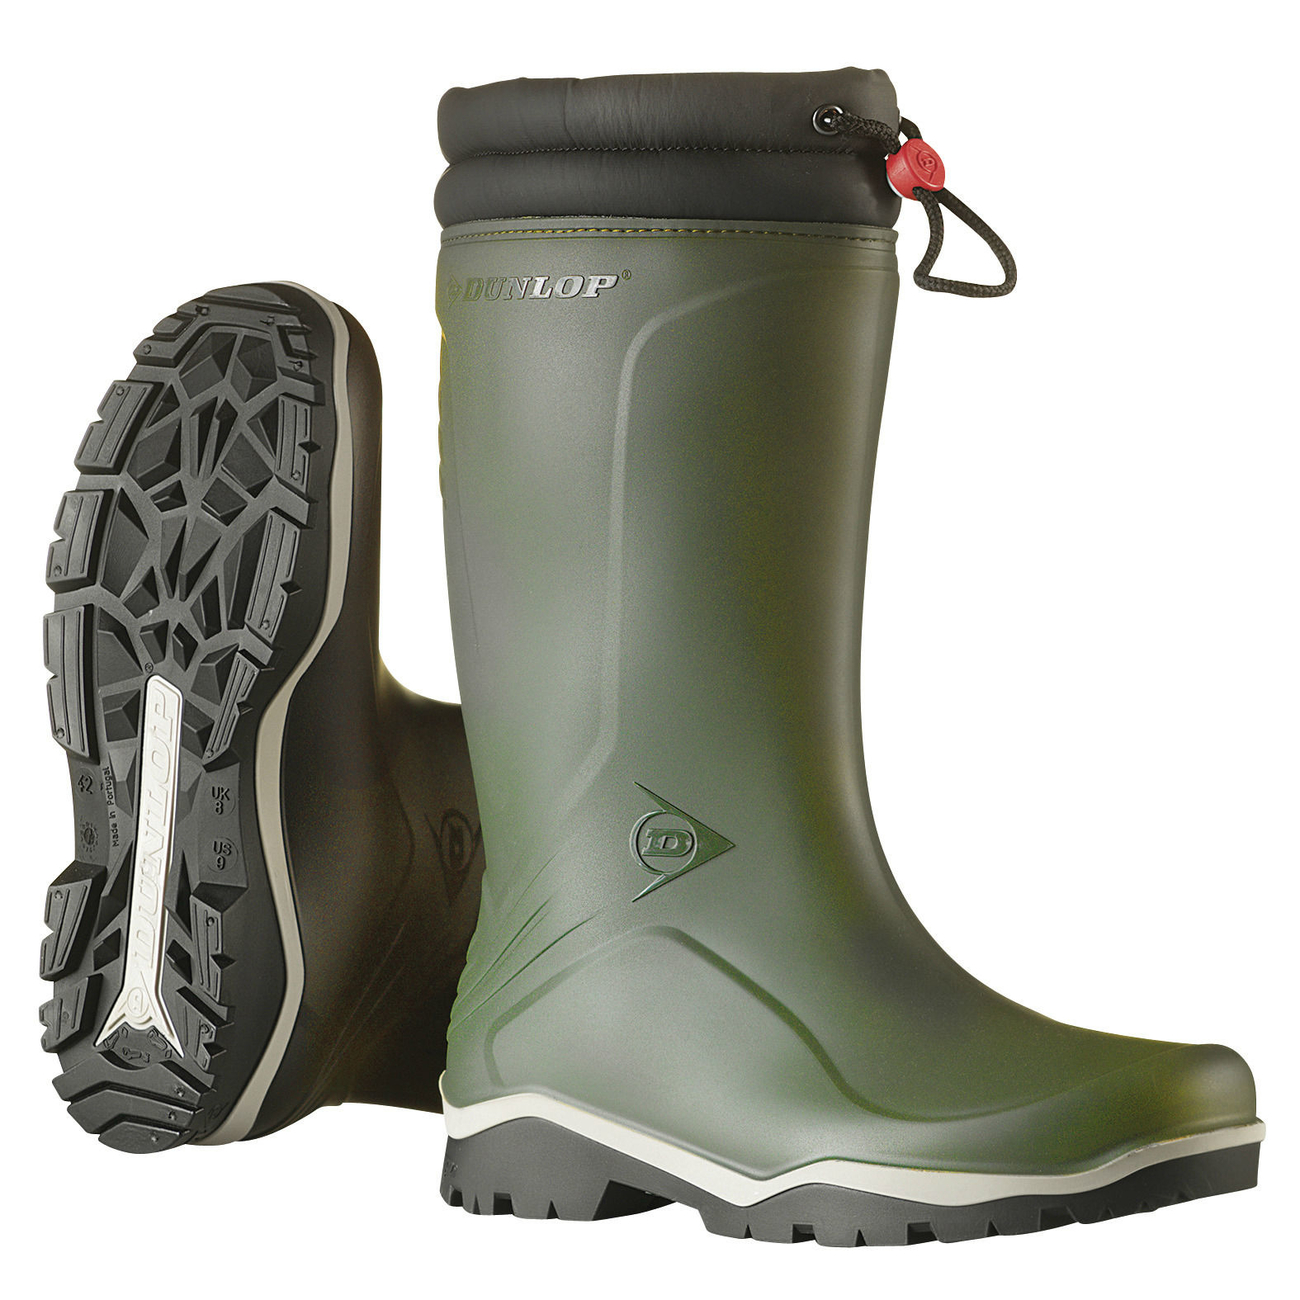 Thermostiefel Dunlop Blizzard Gr. 36